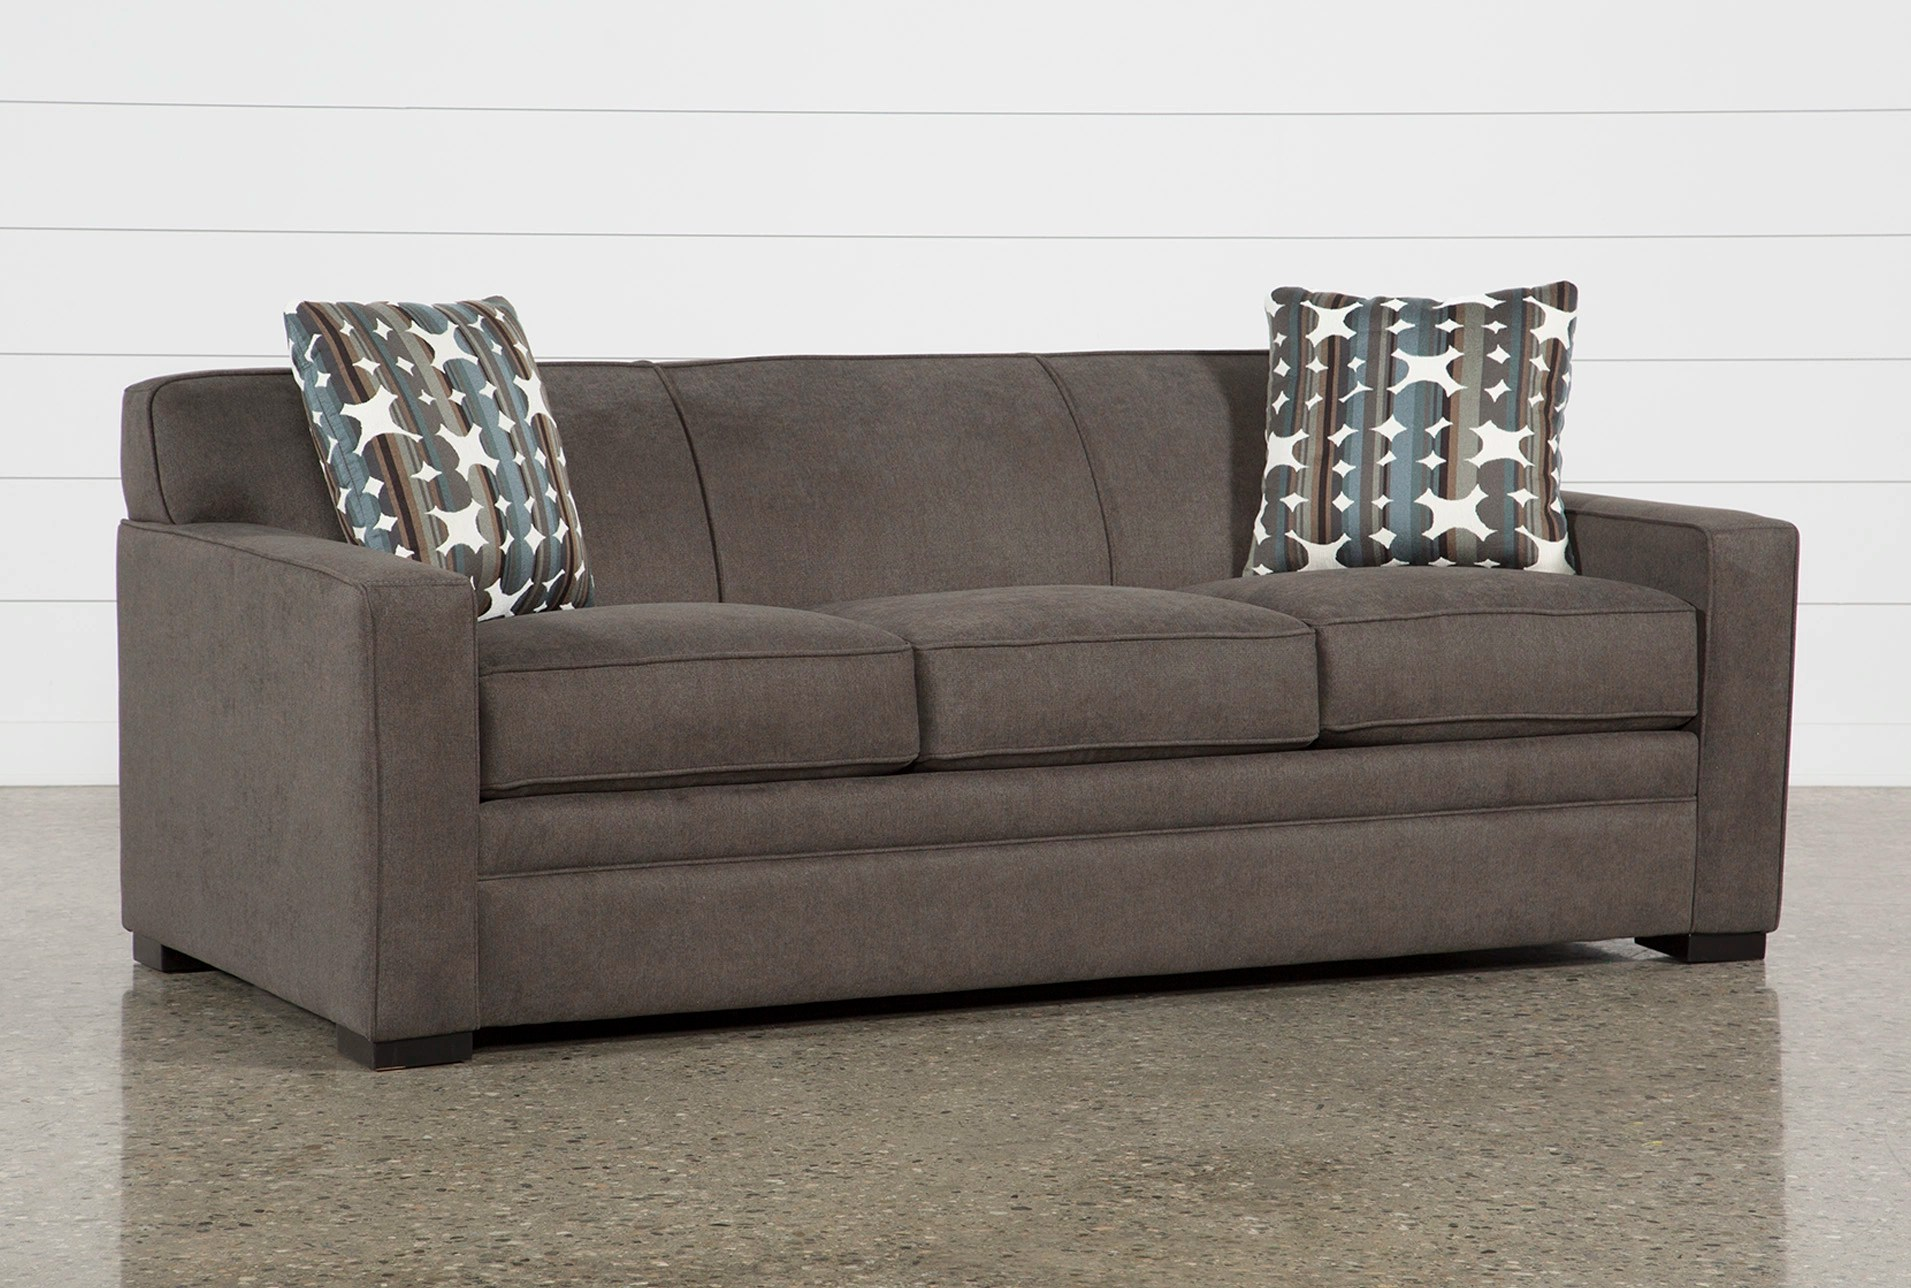 foam sofa sleeper italian sectional sofas ethan ii memory queen living spaces qty 1 has been successfully added to your cart